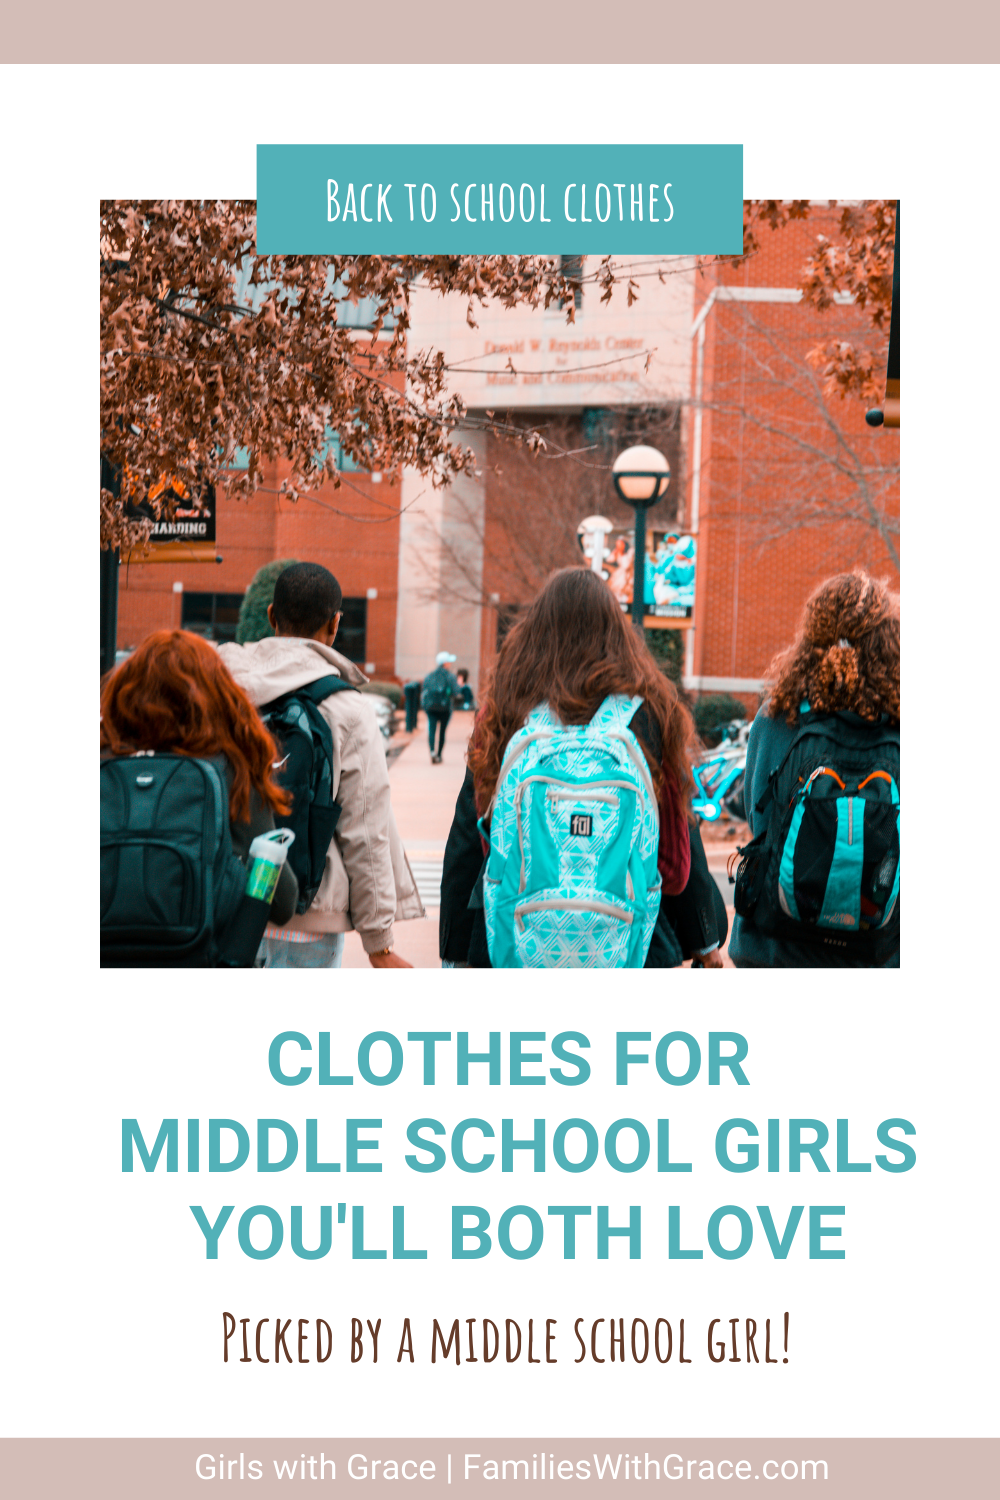 Back to school clothes for middle schoolers